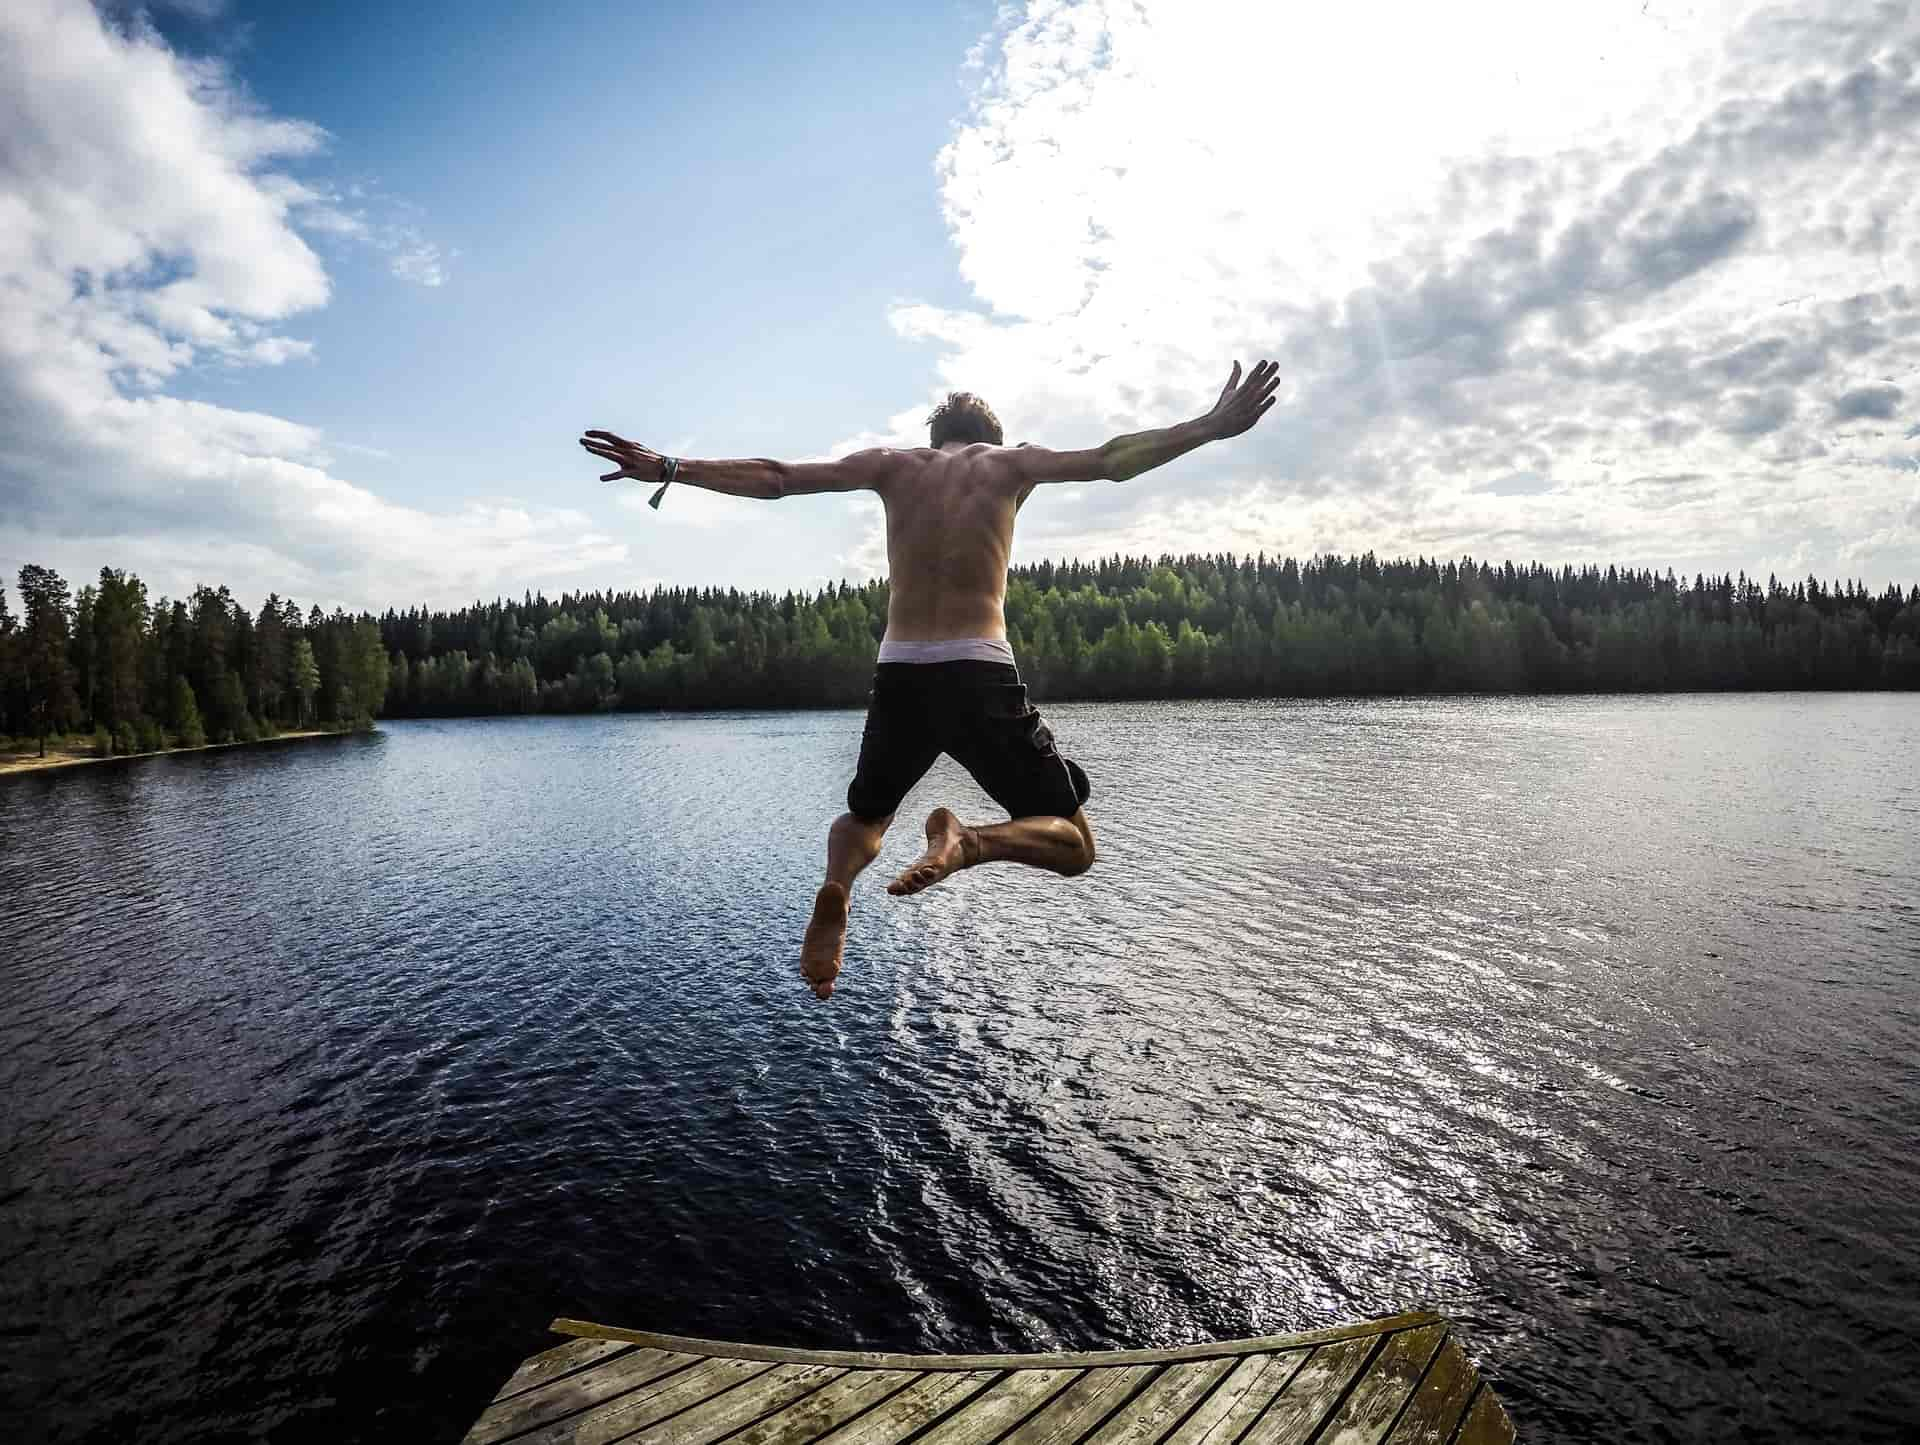 man jumping into lake. 30 days wild ideas